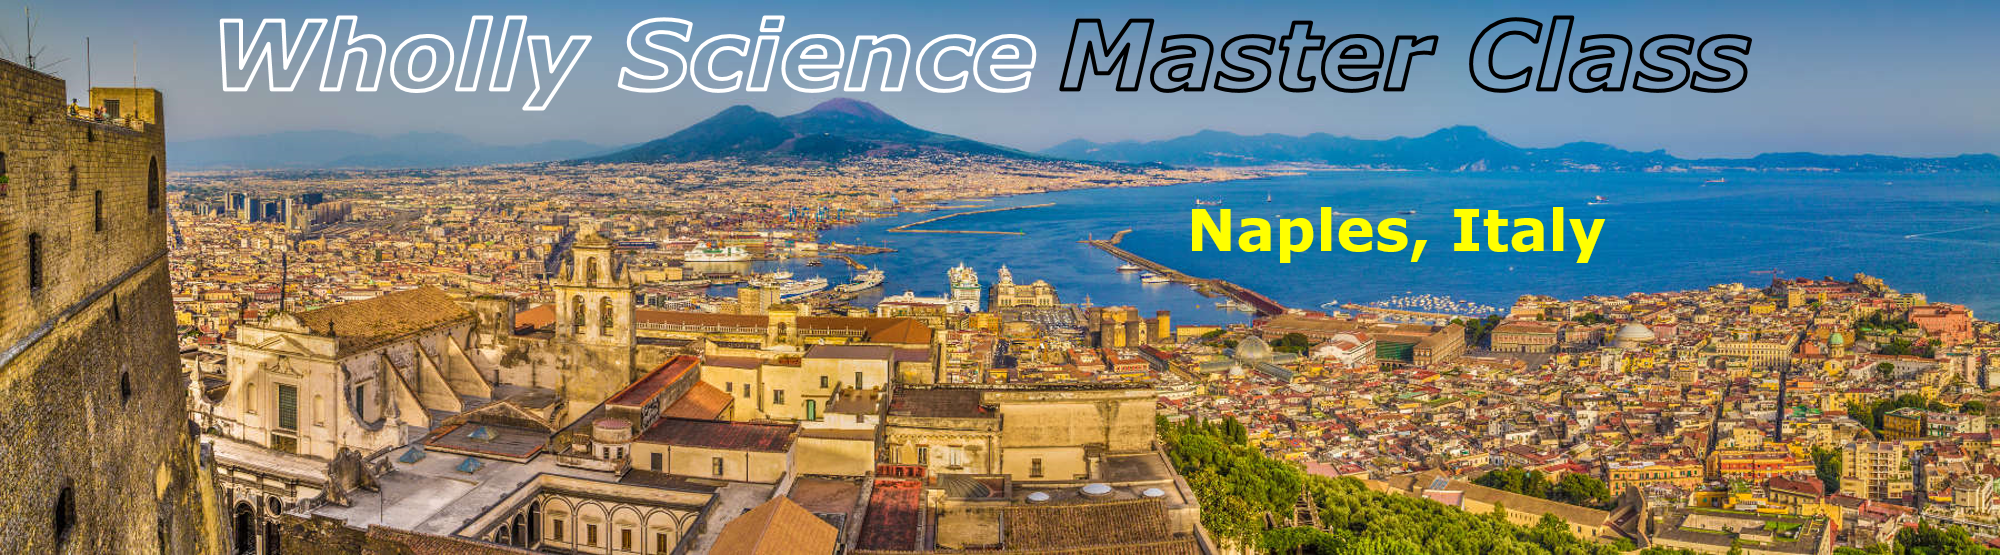 The location of the Wholly Science Master Class on 20-08-2020 is Naples, Italy